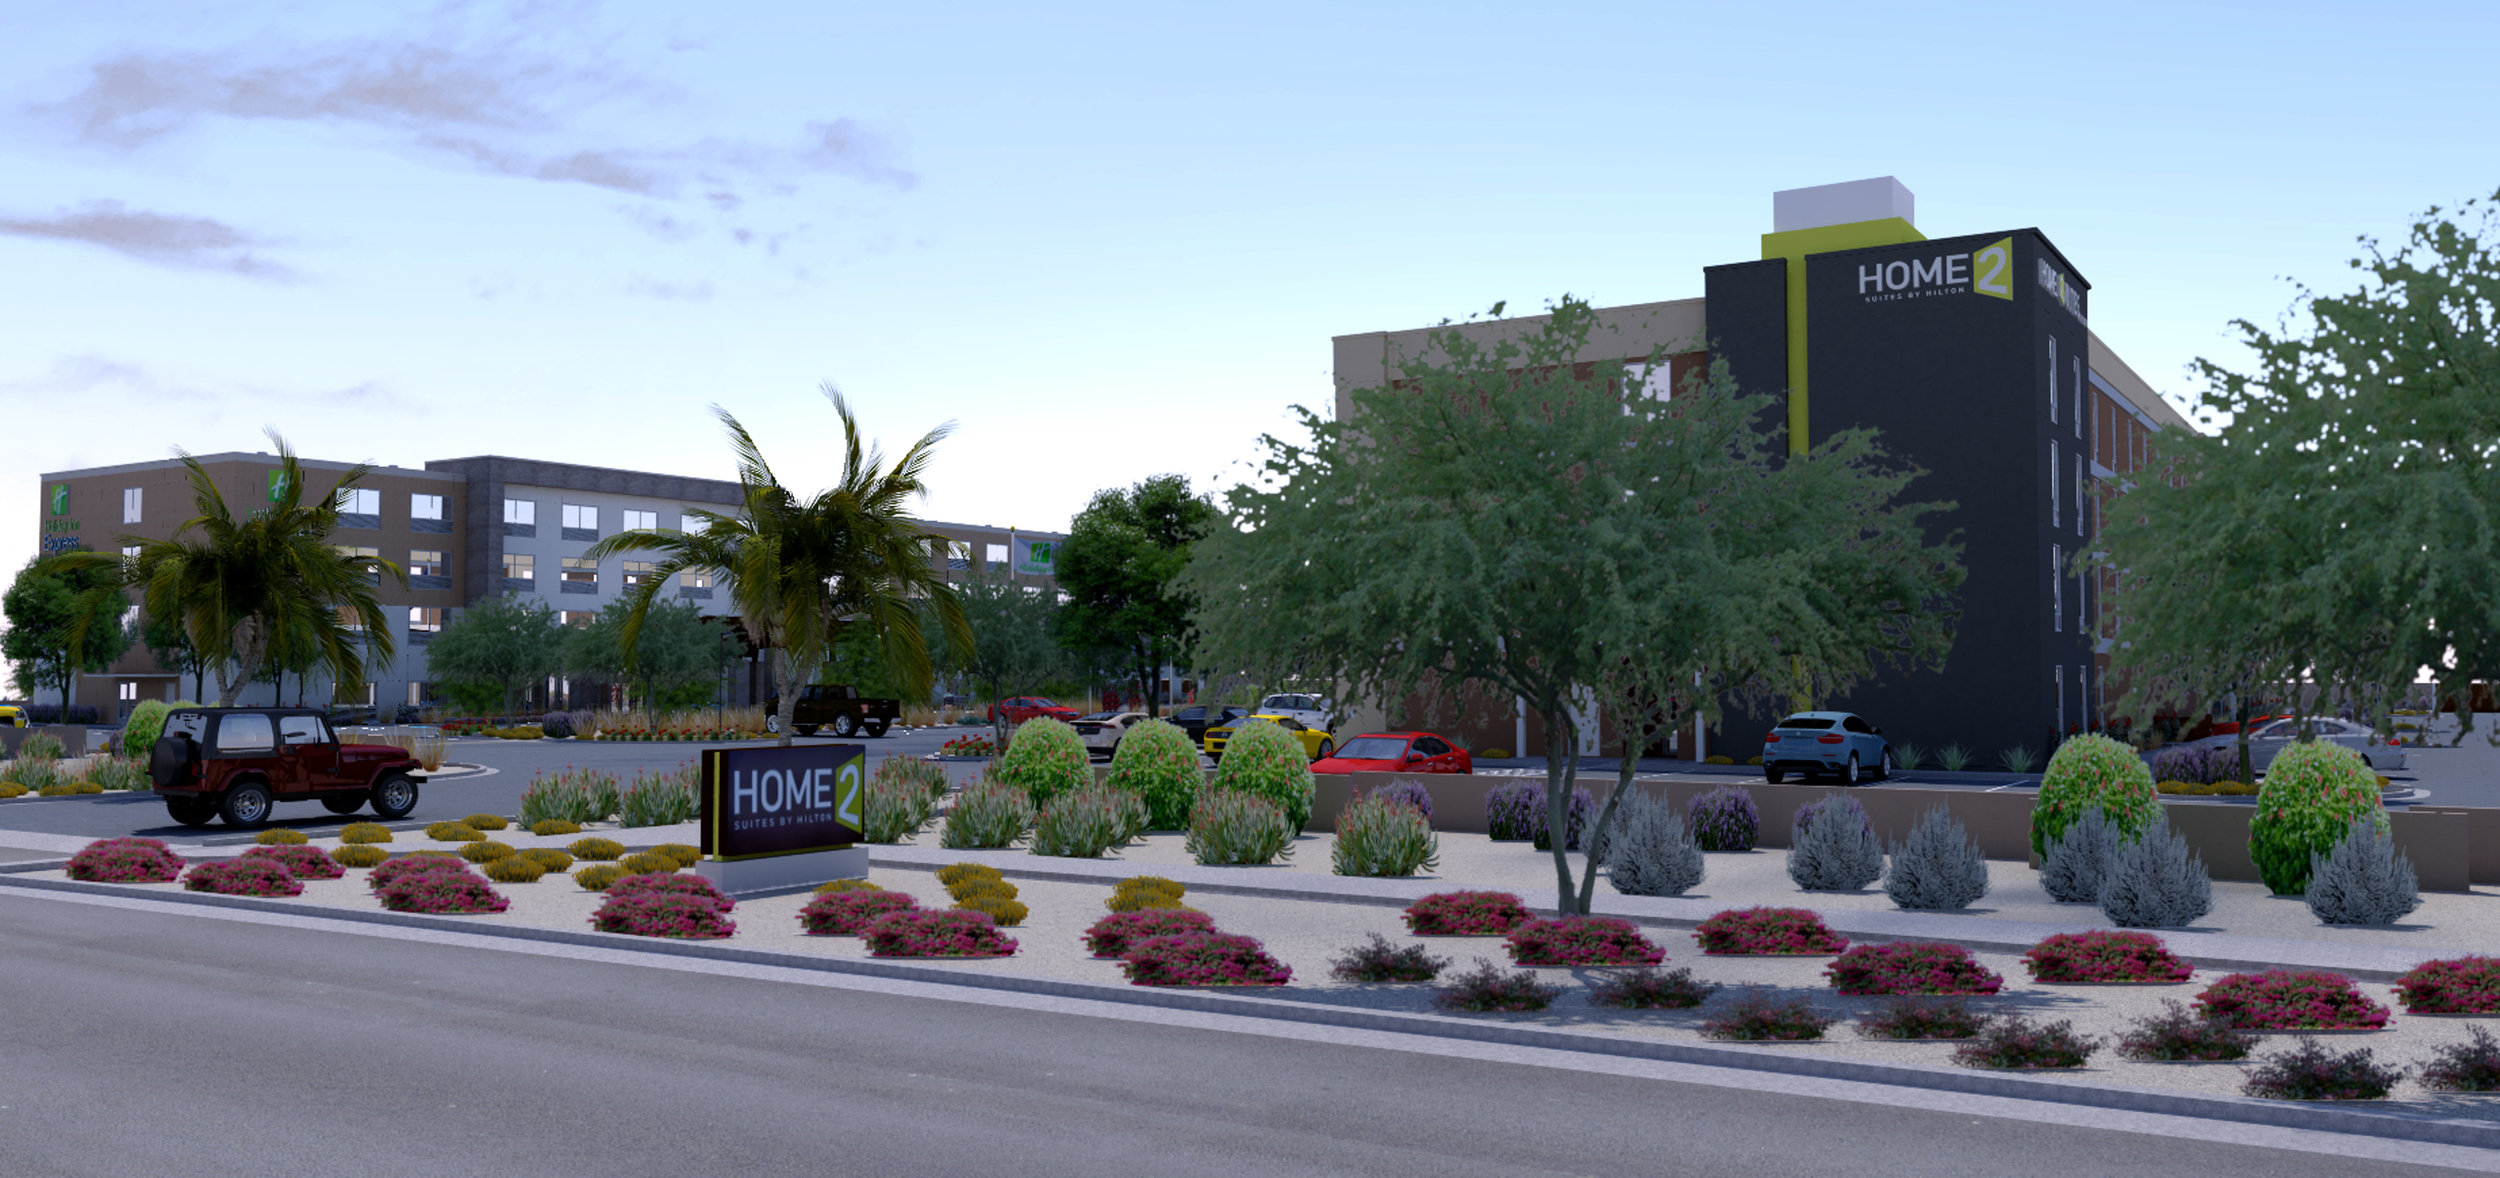 Rendering of Home2 Suites by Hilton